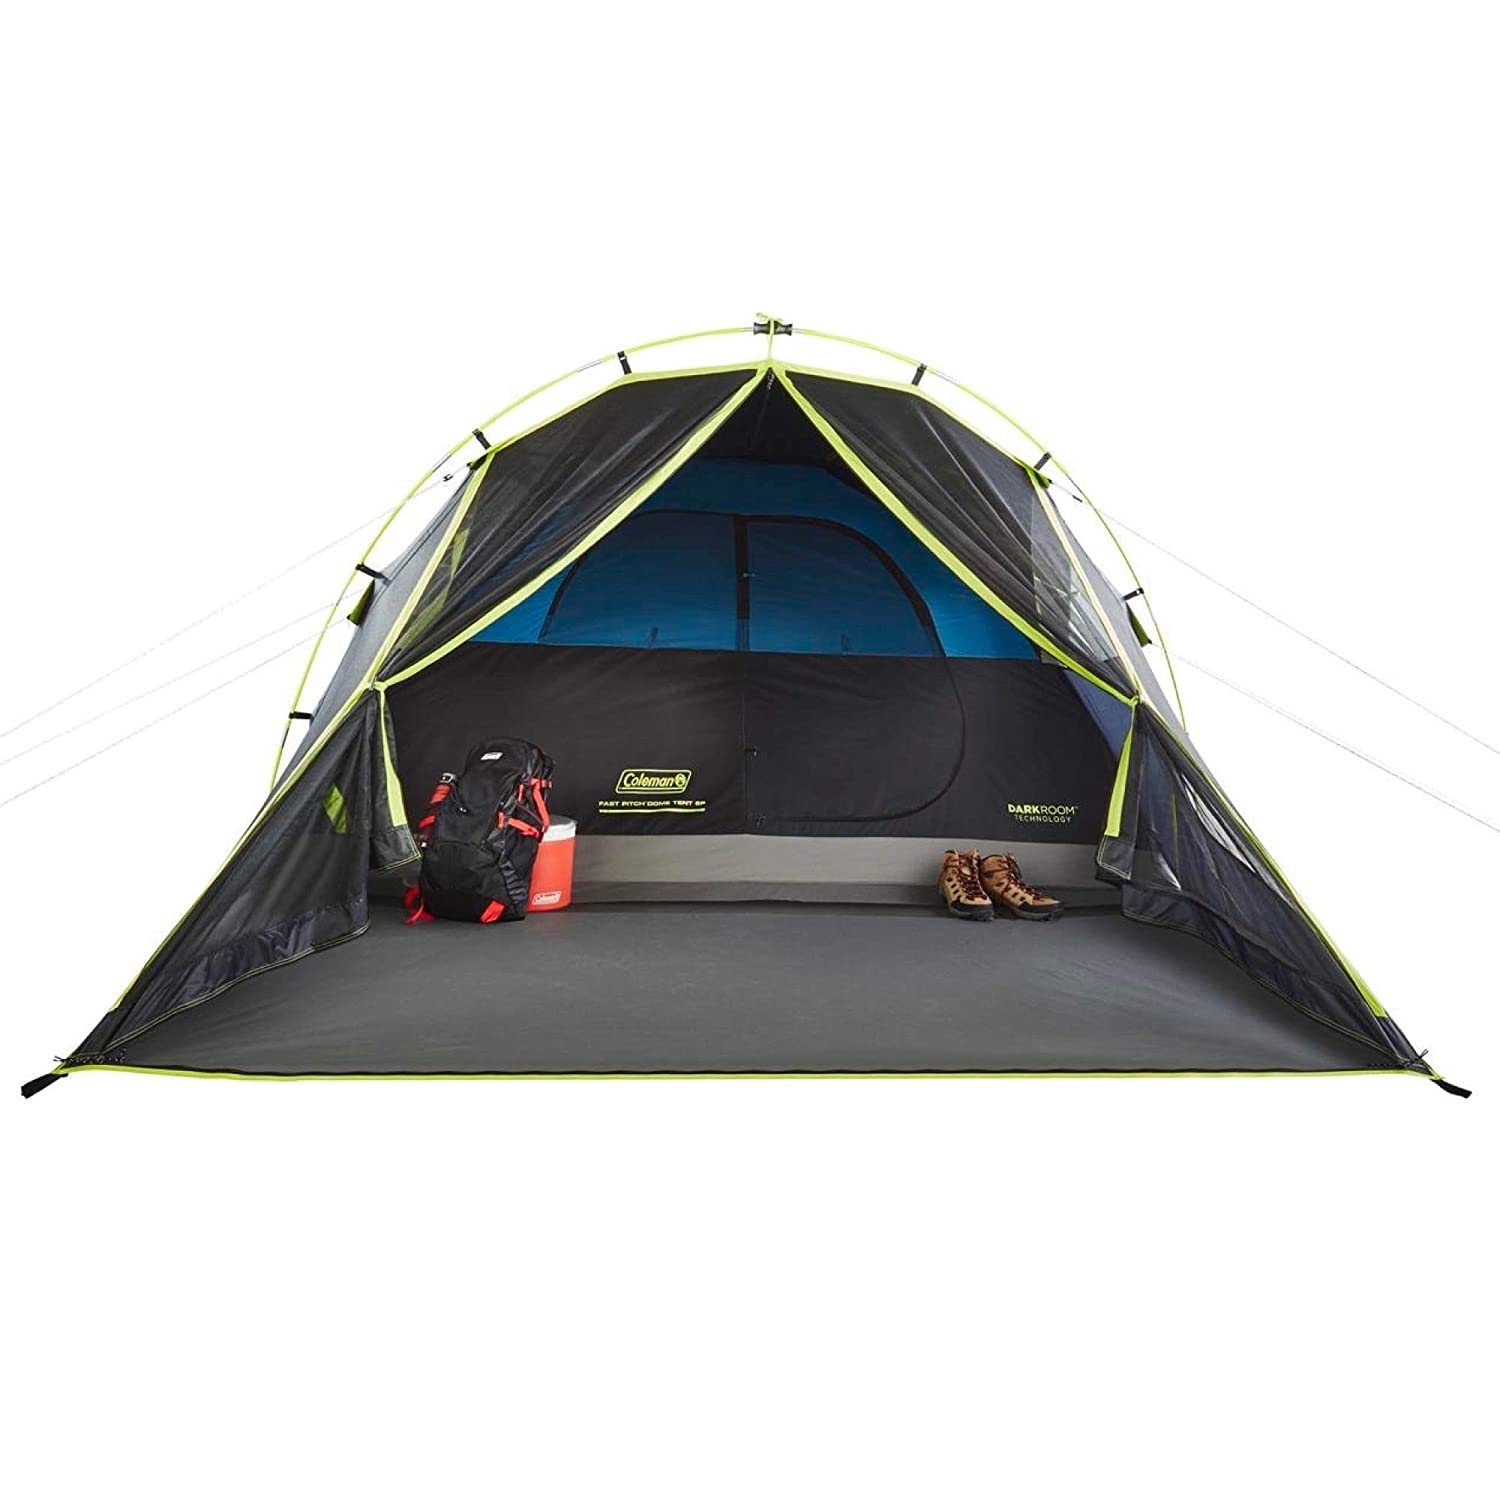 Coleman Carlsbad 4-Person Dome Tent with Screen Room Amazon.co.uk Sports u0026 Outdoors  sc 1 st  Amazon UK & Coleman Carlsbad 4-Person Dome Tent with Screen Room: Amazon.co.uk ...